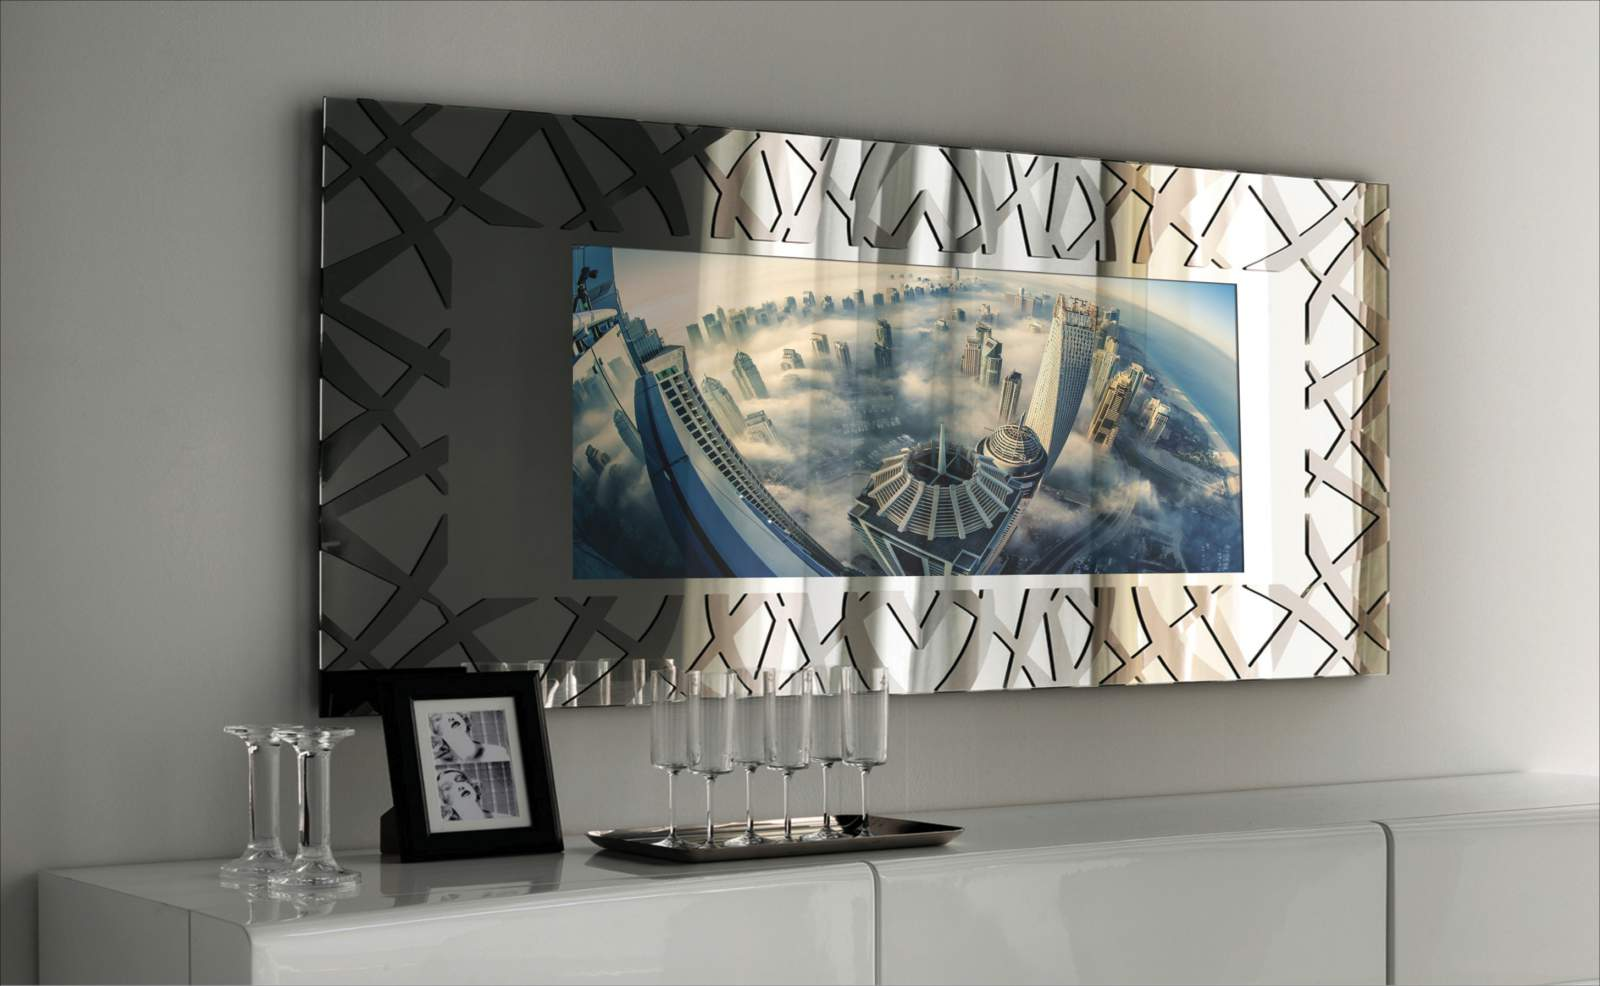 THE WALL FIXED COLLECTION MIRROR TV.jpg